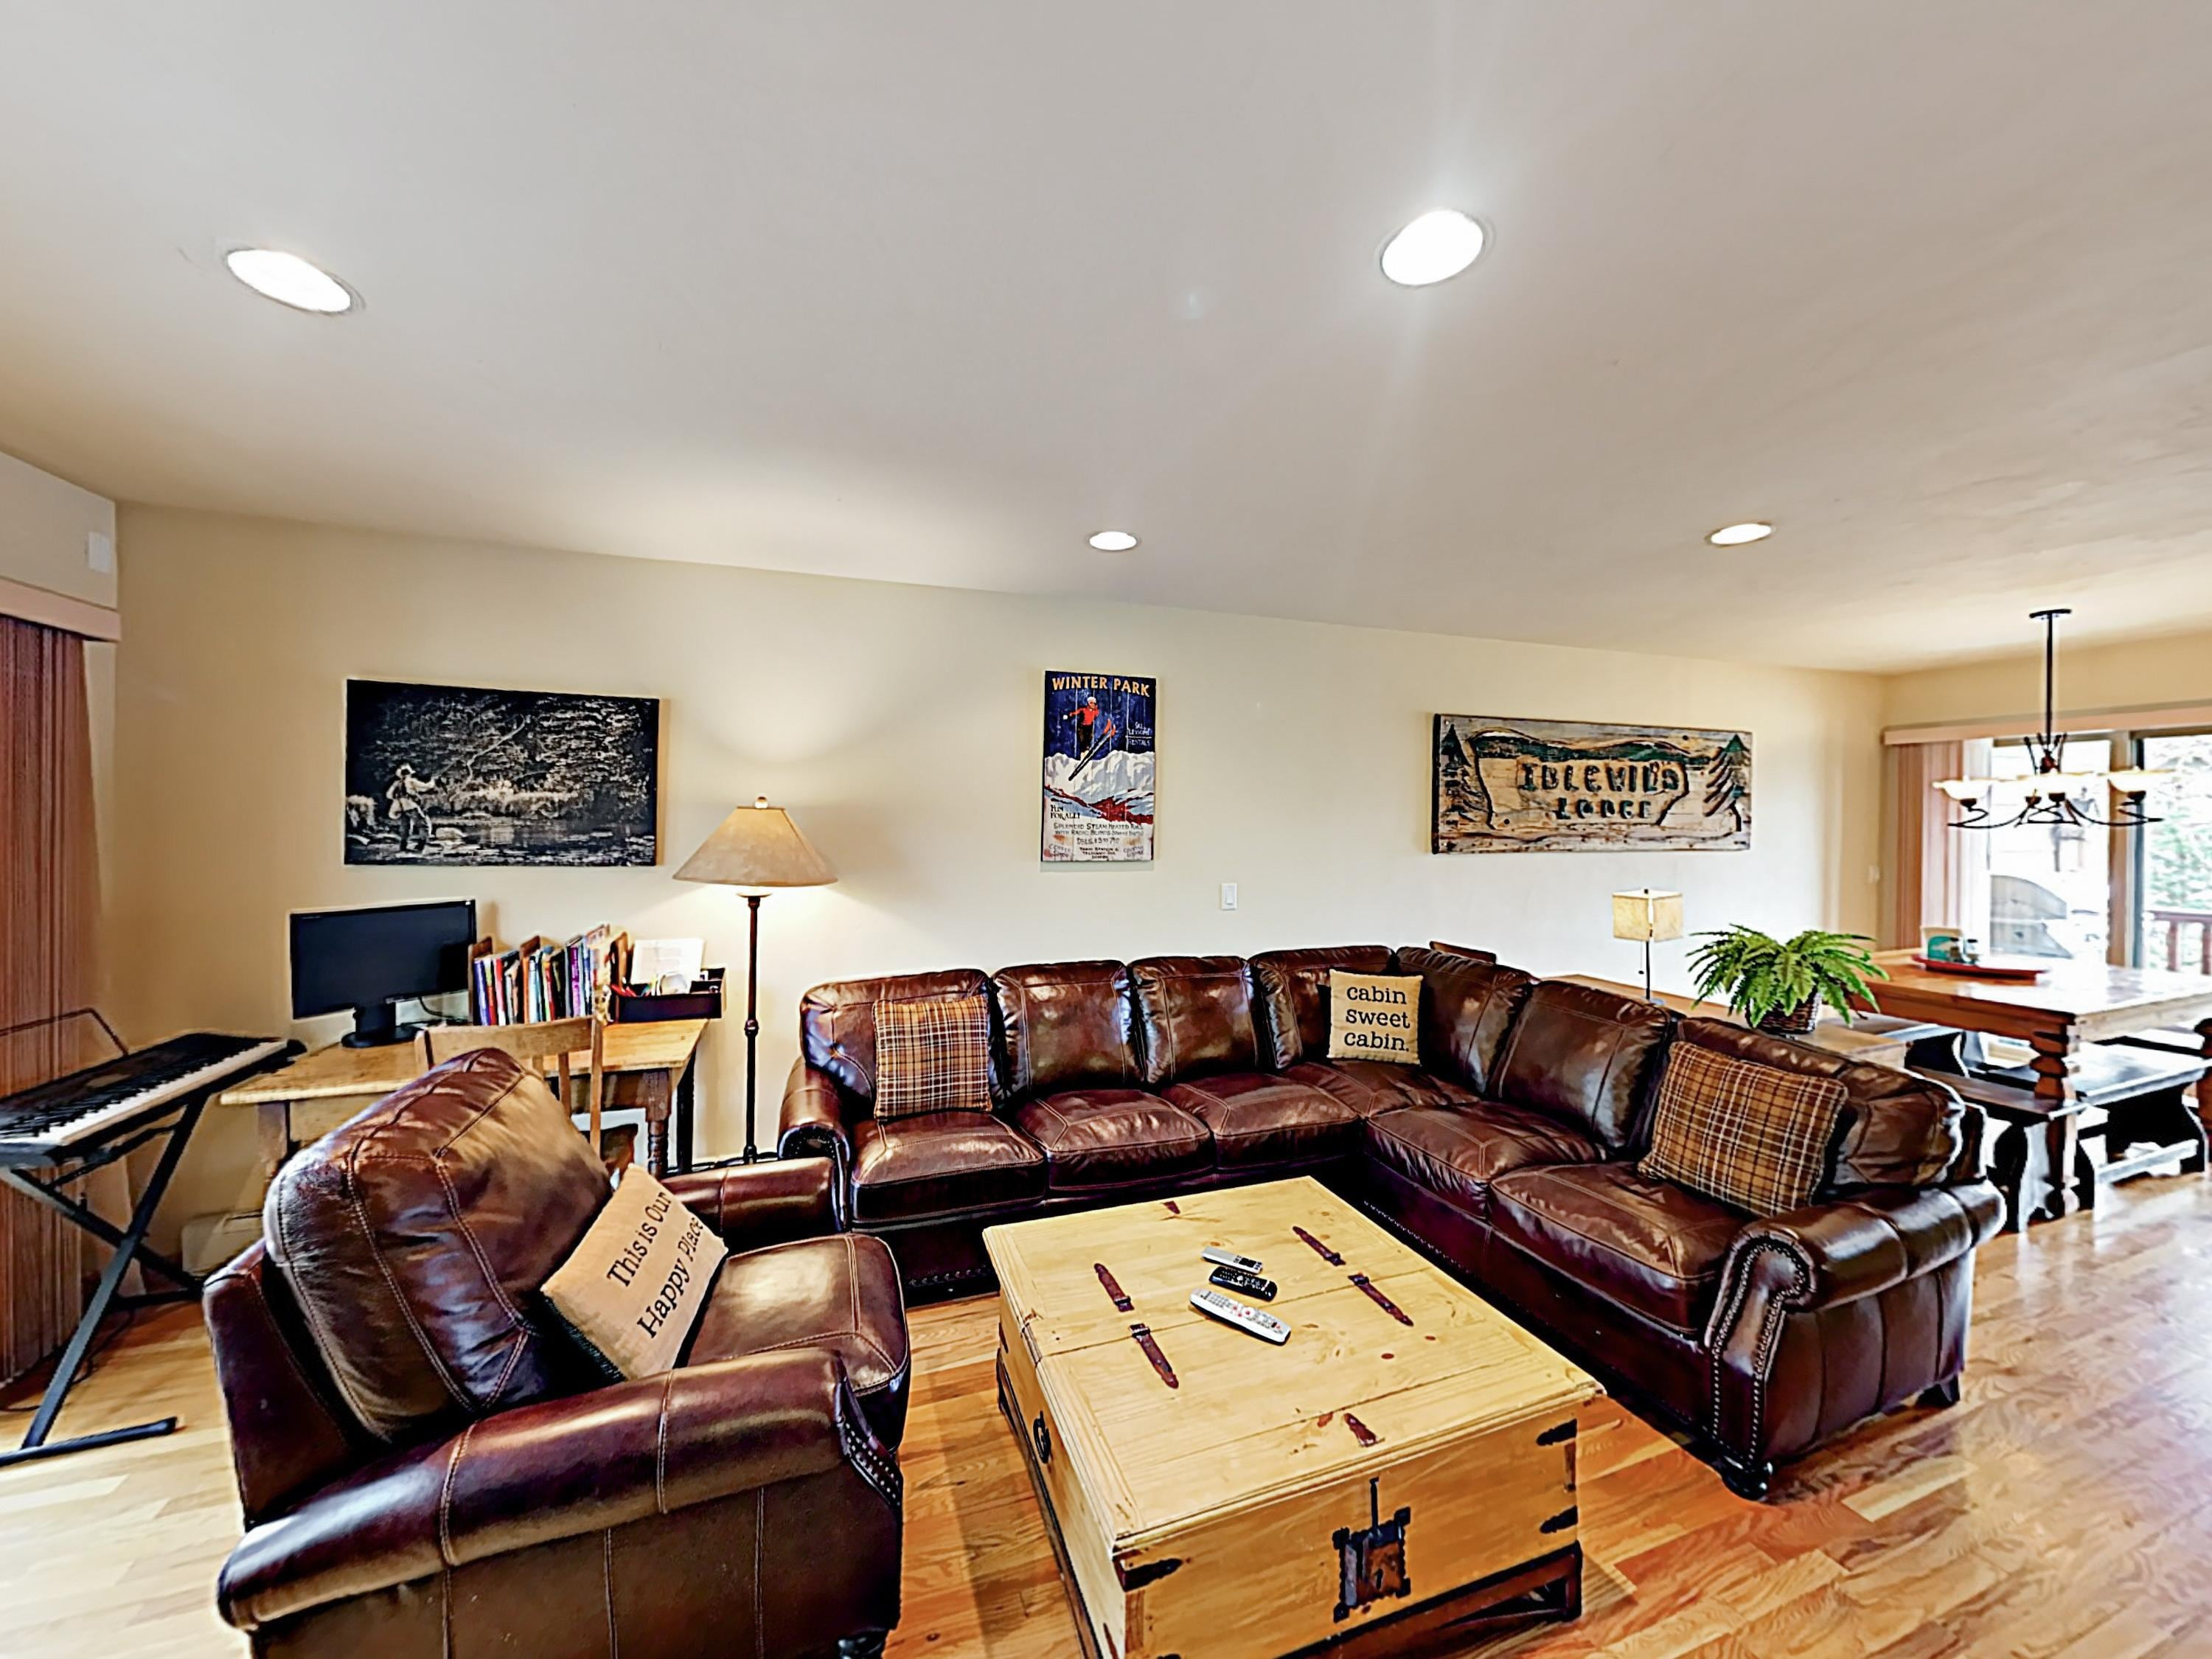 Welcome to Winter Park! This townhome is professionally managed by TurnKey Vacation Rentals.